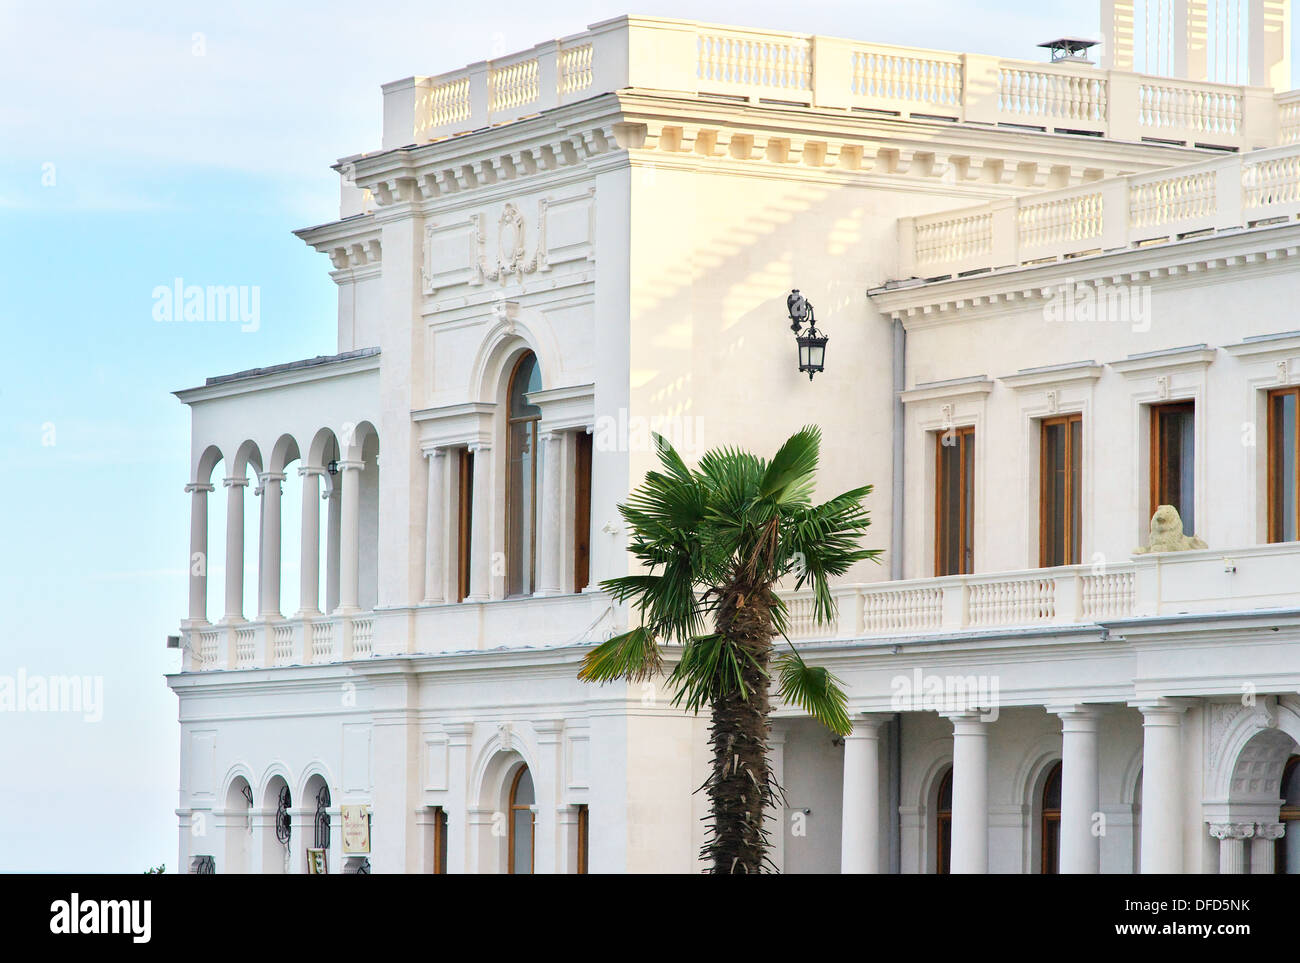 Livadia palace, Crimea, Ukraine. Location of the historic Yalta Conference at the end of World War II - Stock Image